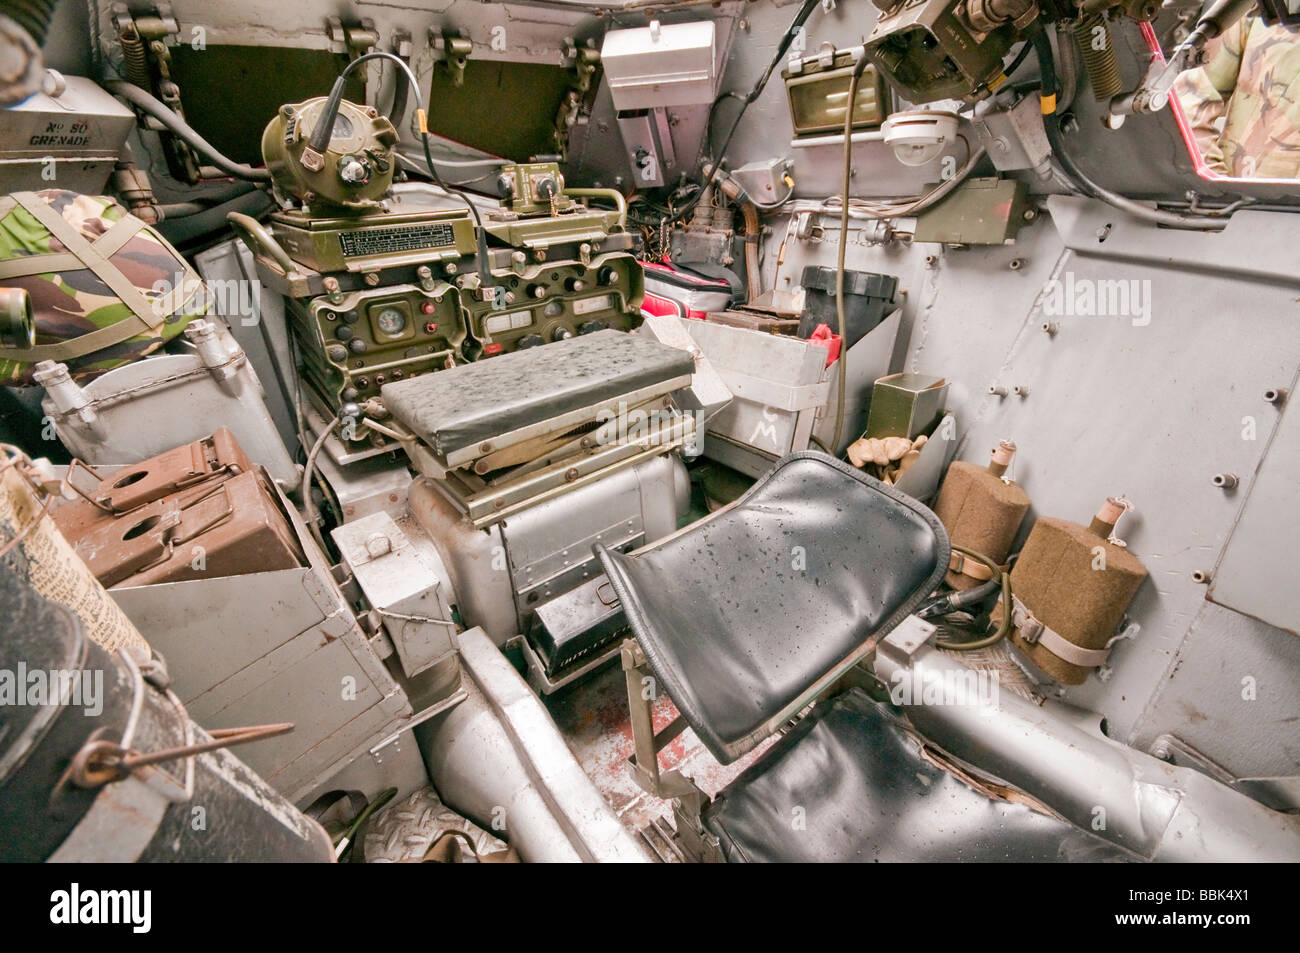 cramped interior of a ferret armoured vehicle facing rear stock photo royalty free image. Black Bedroom Furniture Sets. Home Design Ideas